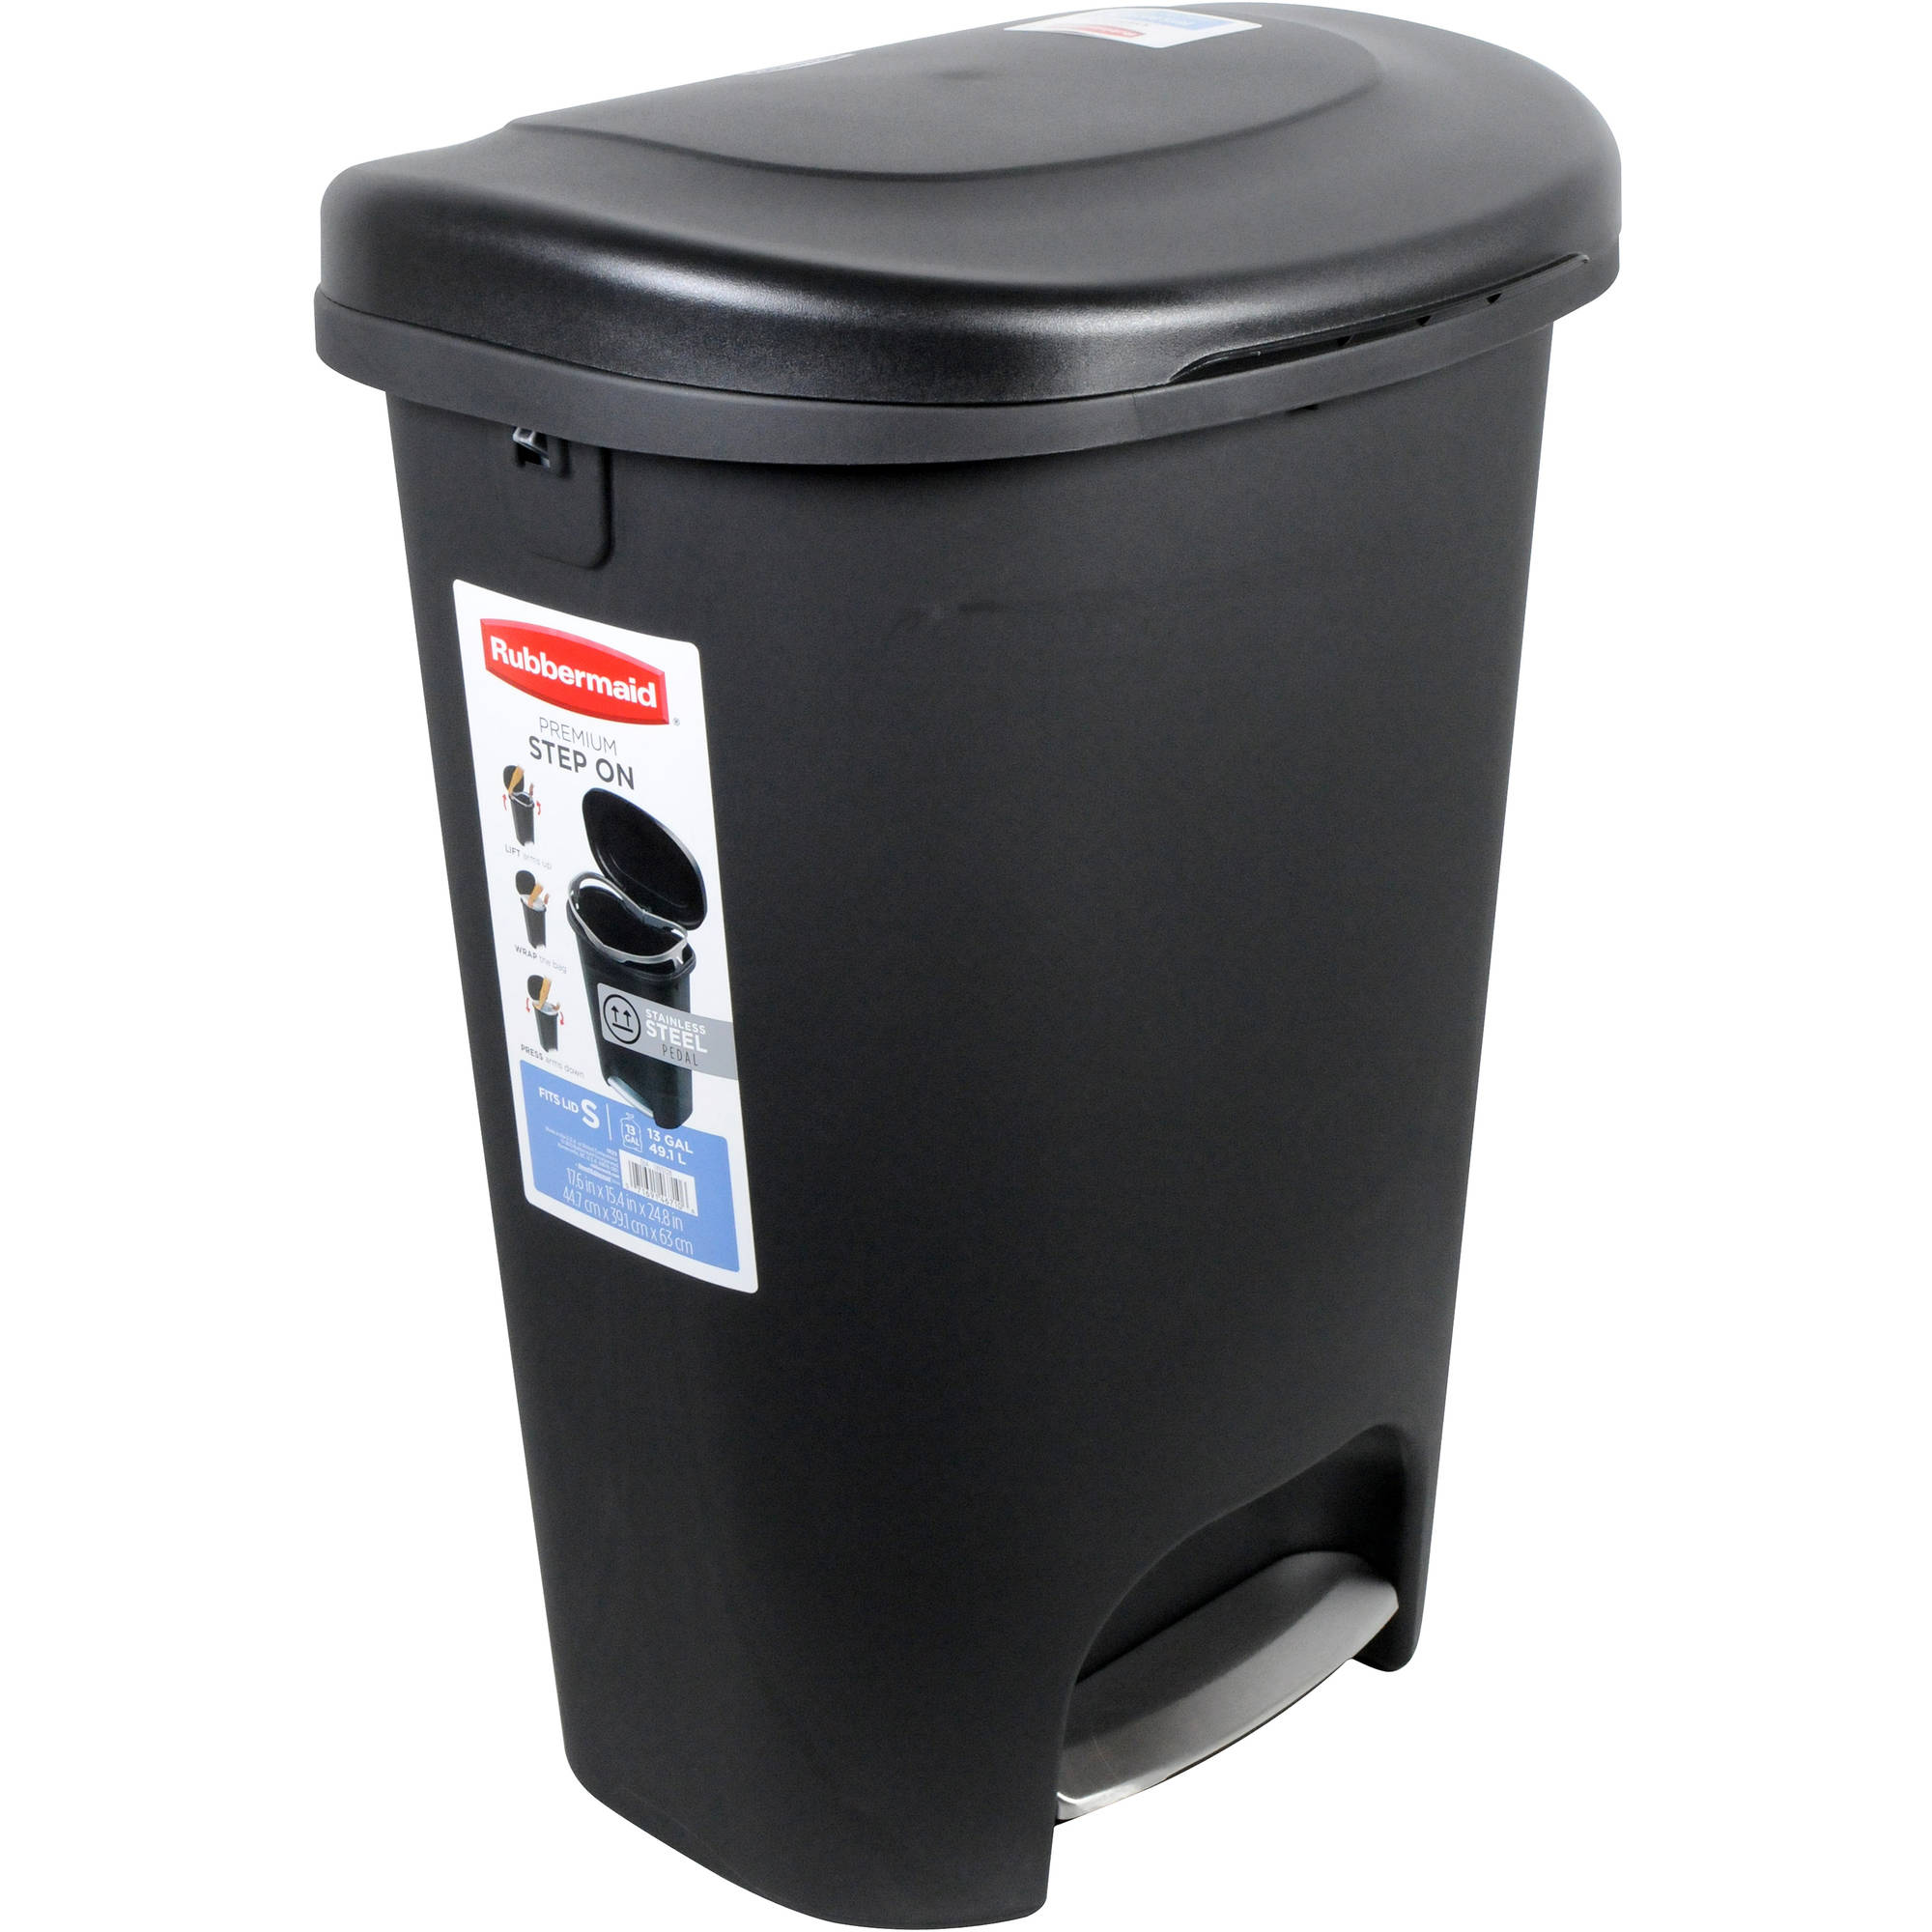 Rubbermaid Premium Step-On Trash Can, 13 Gal, Black with Metal Accent